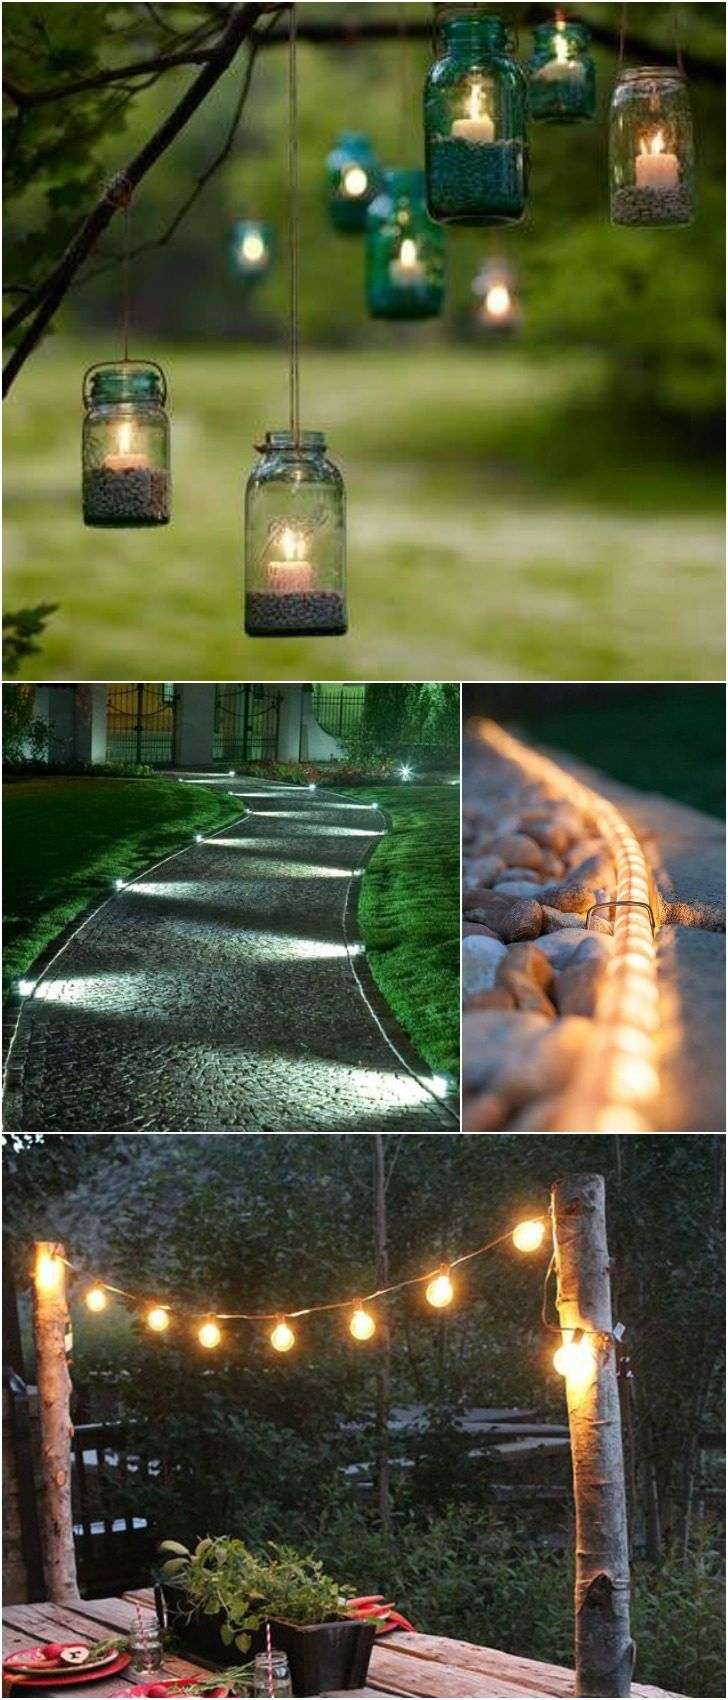 10 Outdoor Lighting Ideas For Your Garden Landscape 5 Is Really intended for Outdoor Backyard Lighting Ideas